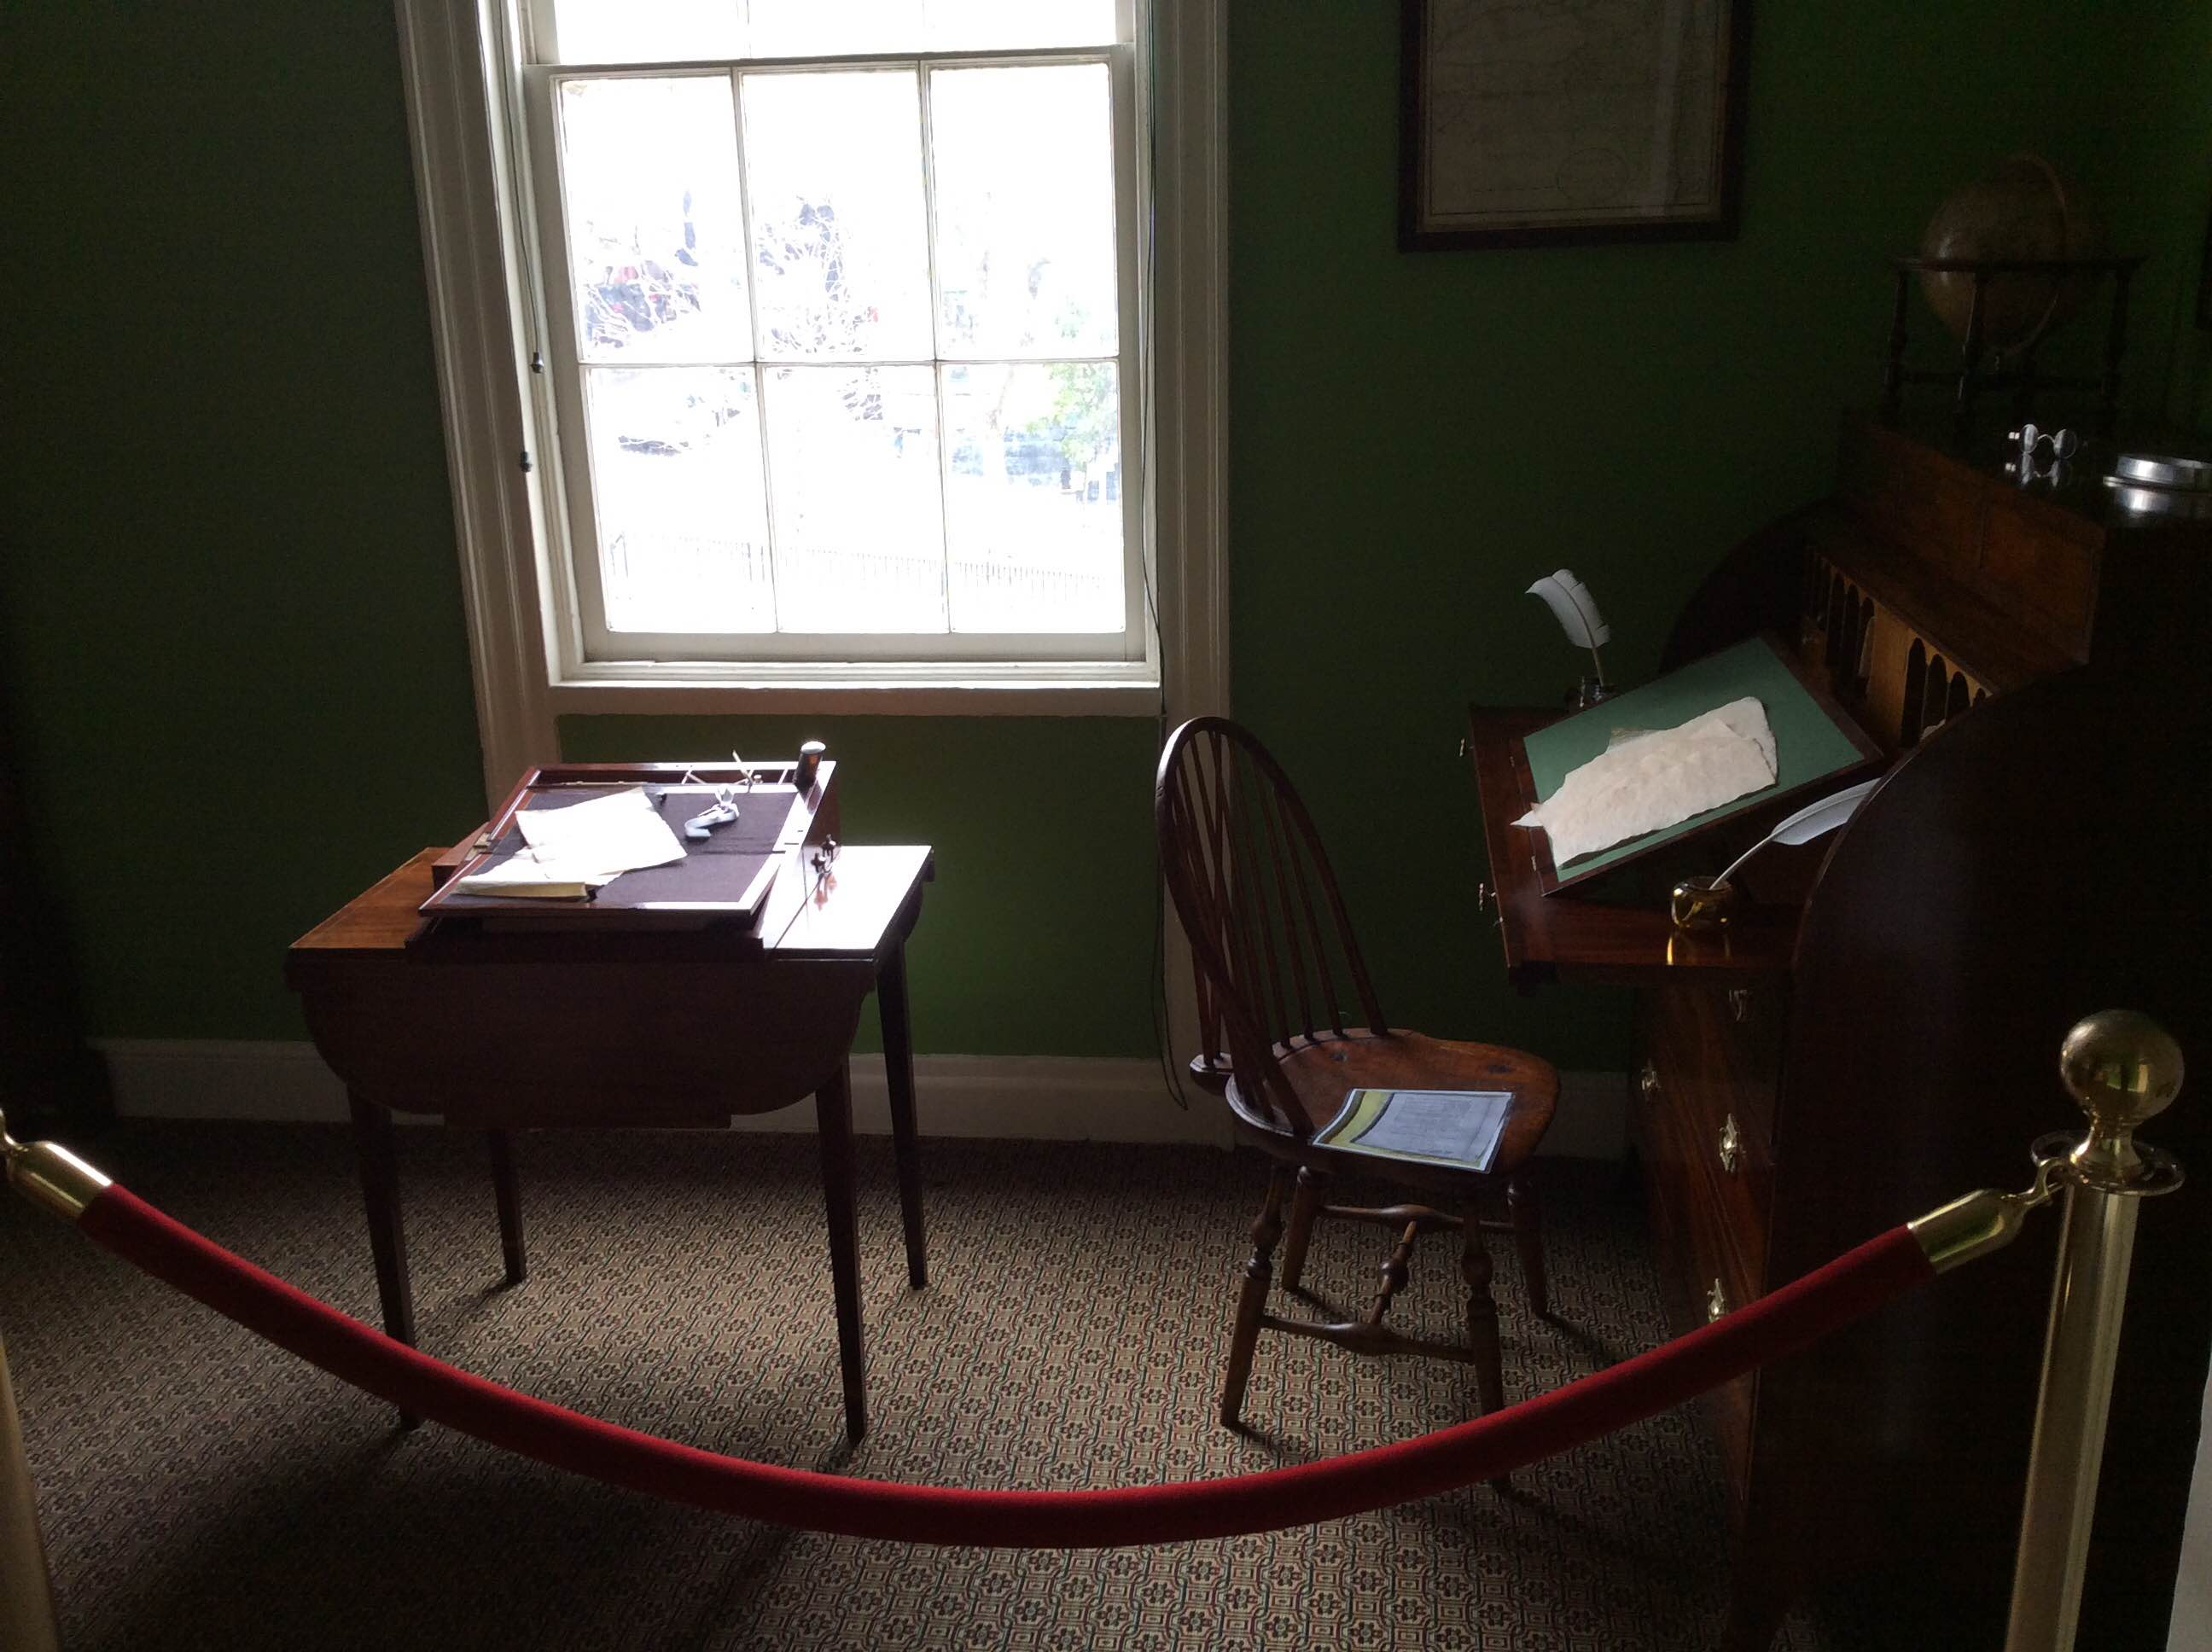 Hamilton's study within the memorial.